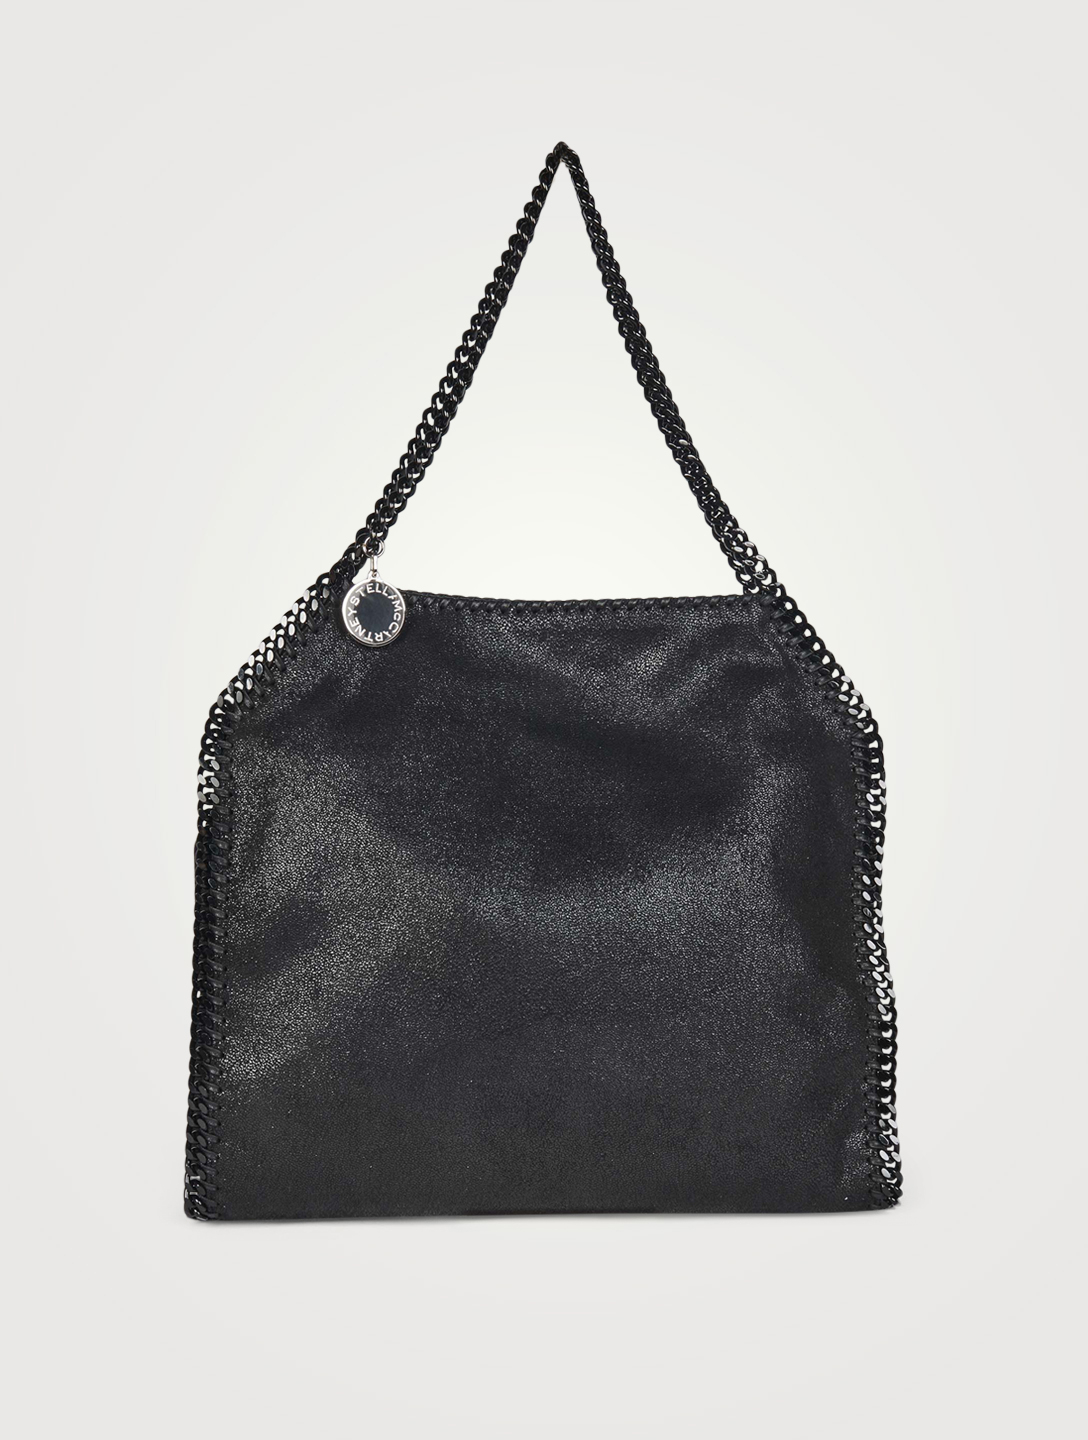 STELLA MCCARTNEY Small Falabella Tote Bag Women's Black